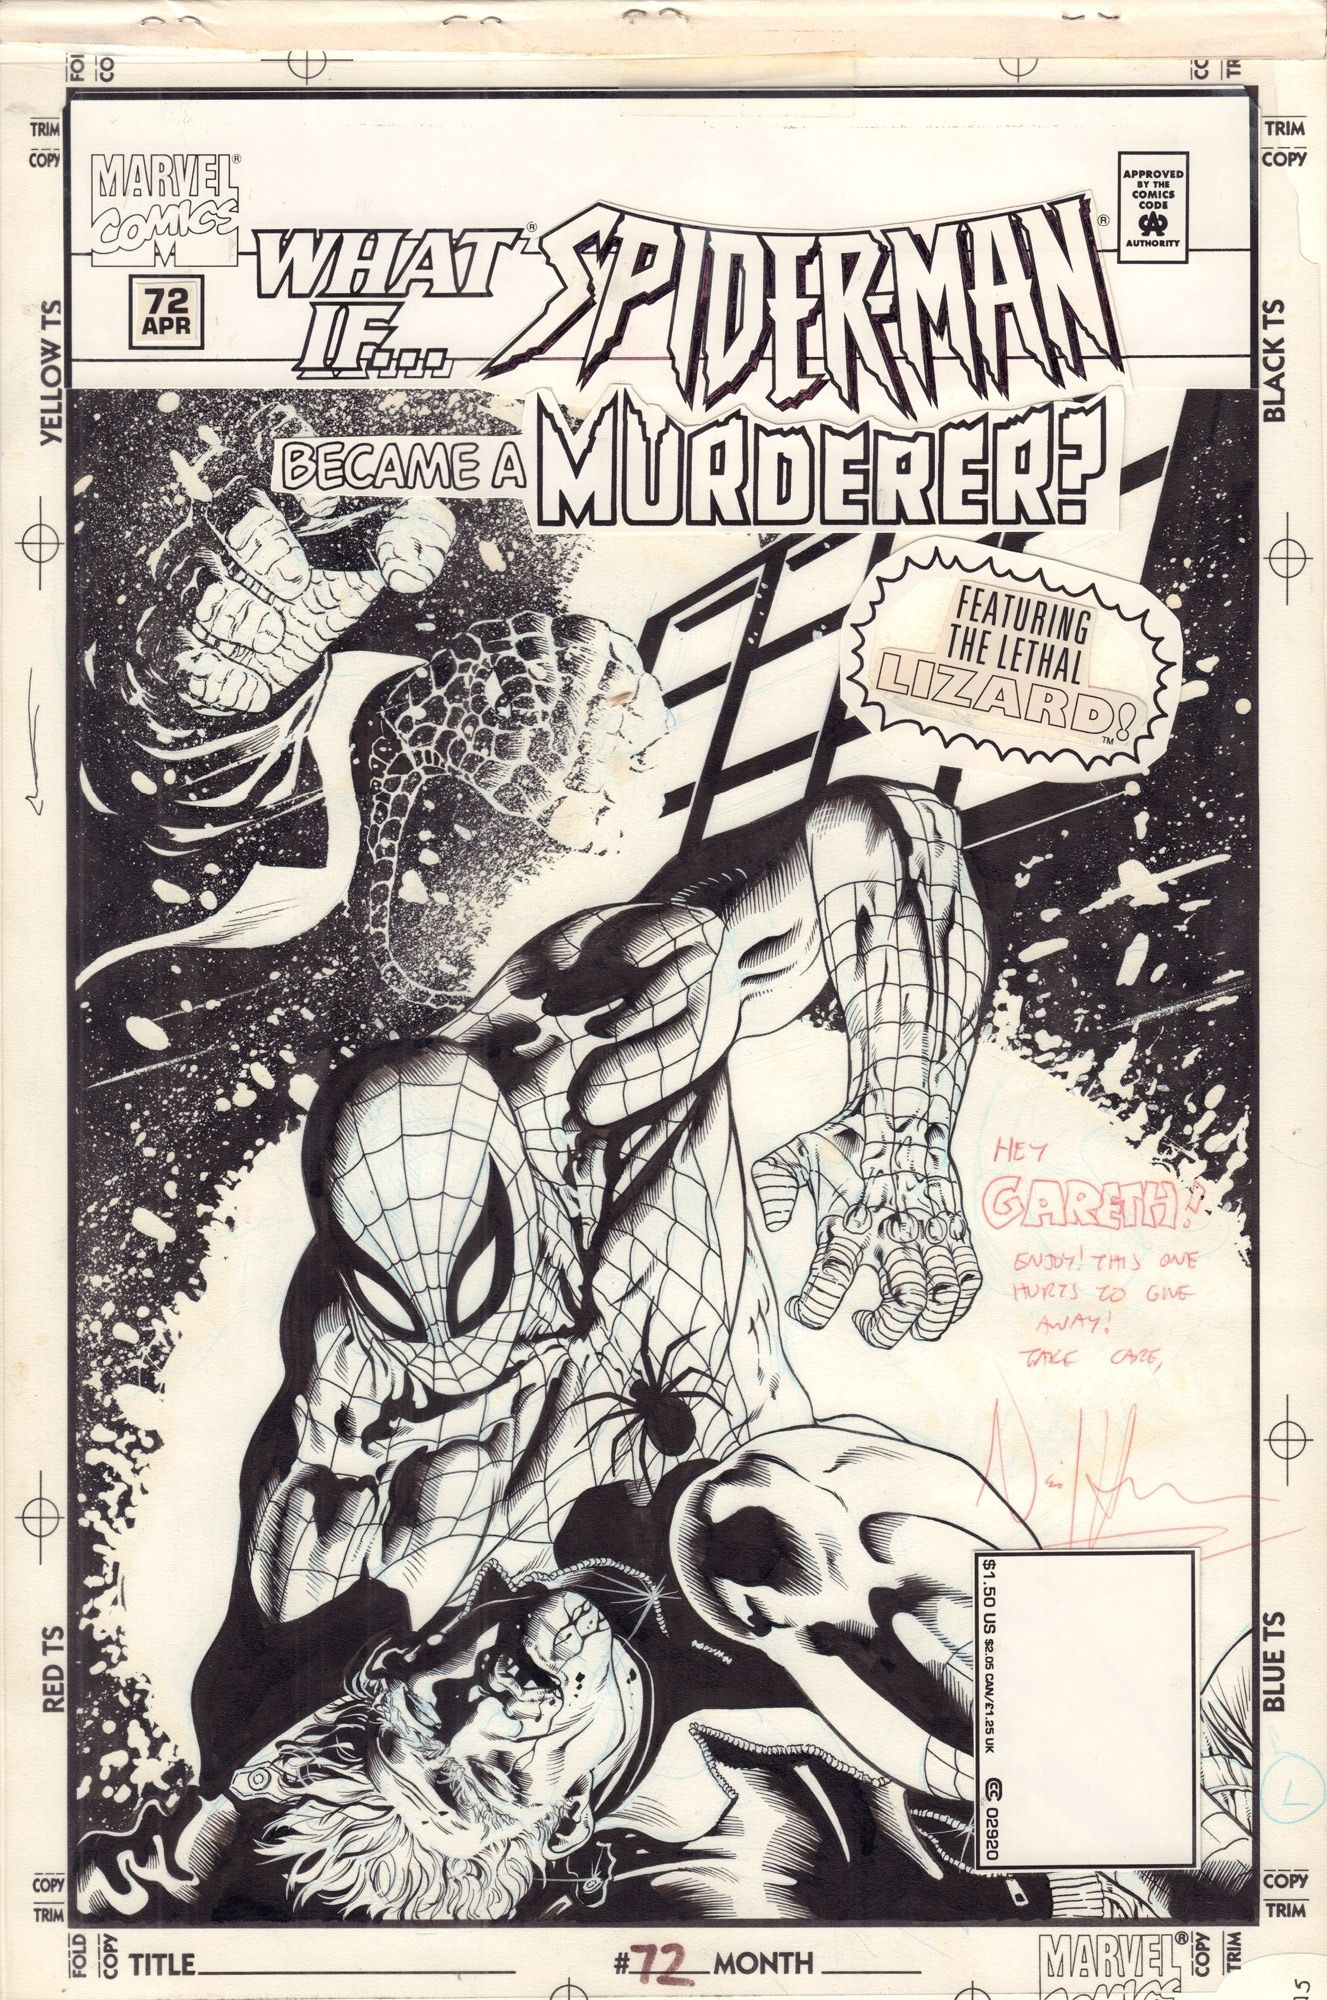 What If? vol 2 #72 Spider-man. Became a Murderer? - okładka